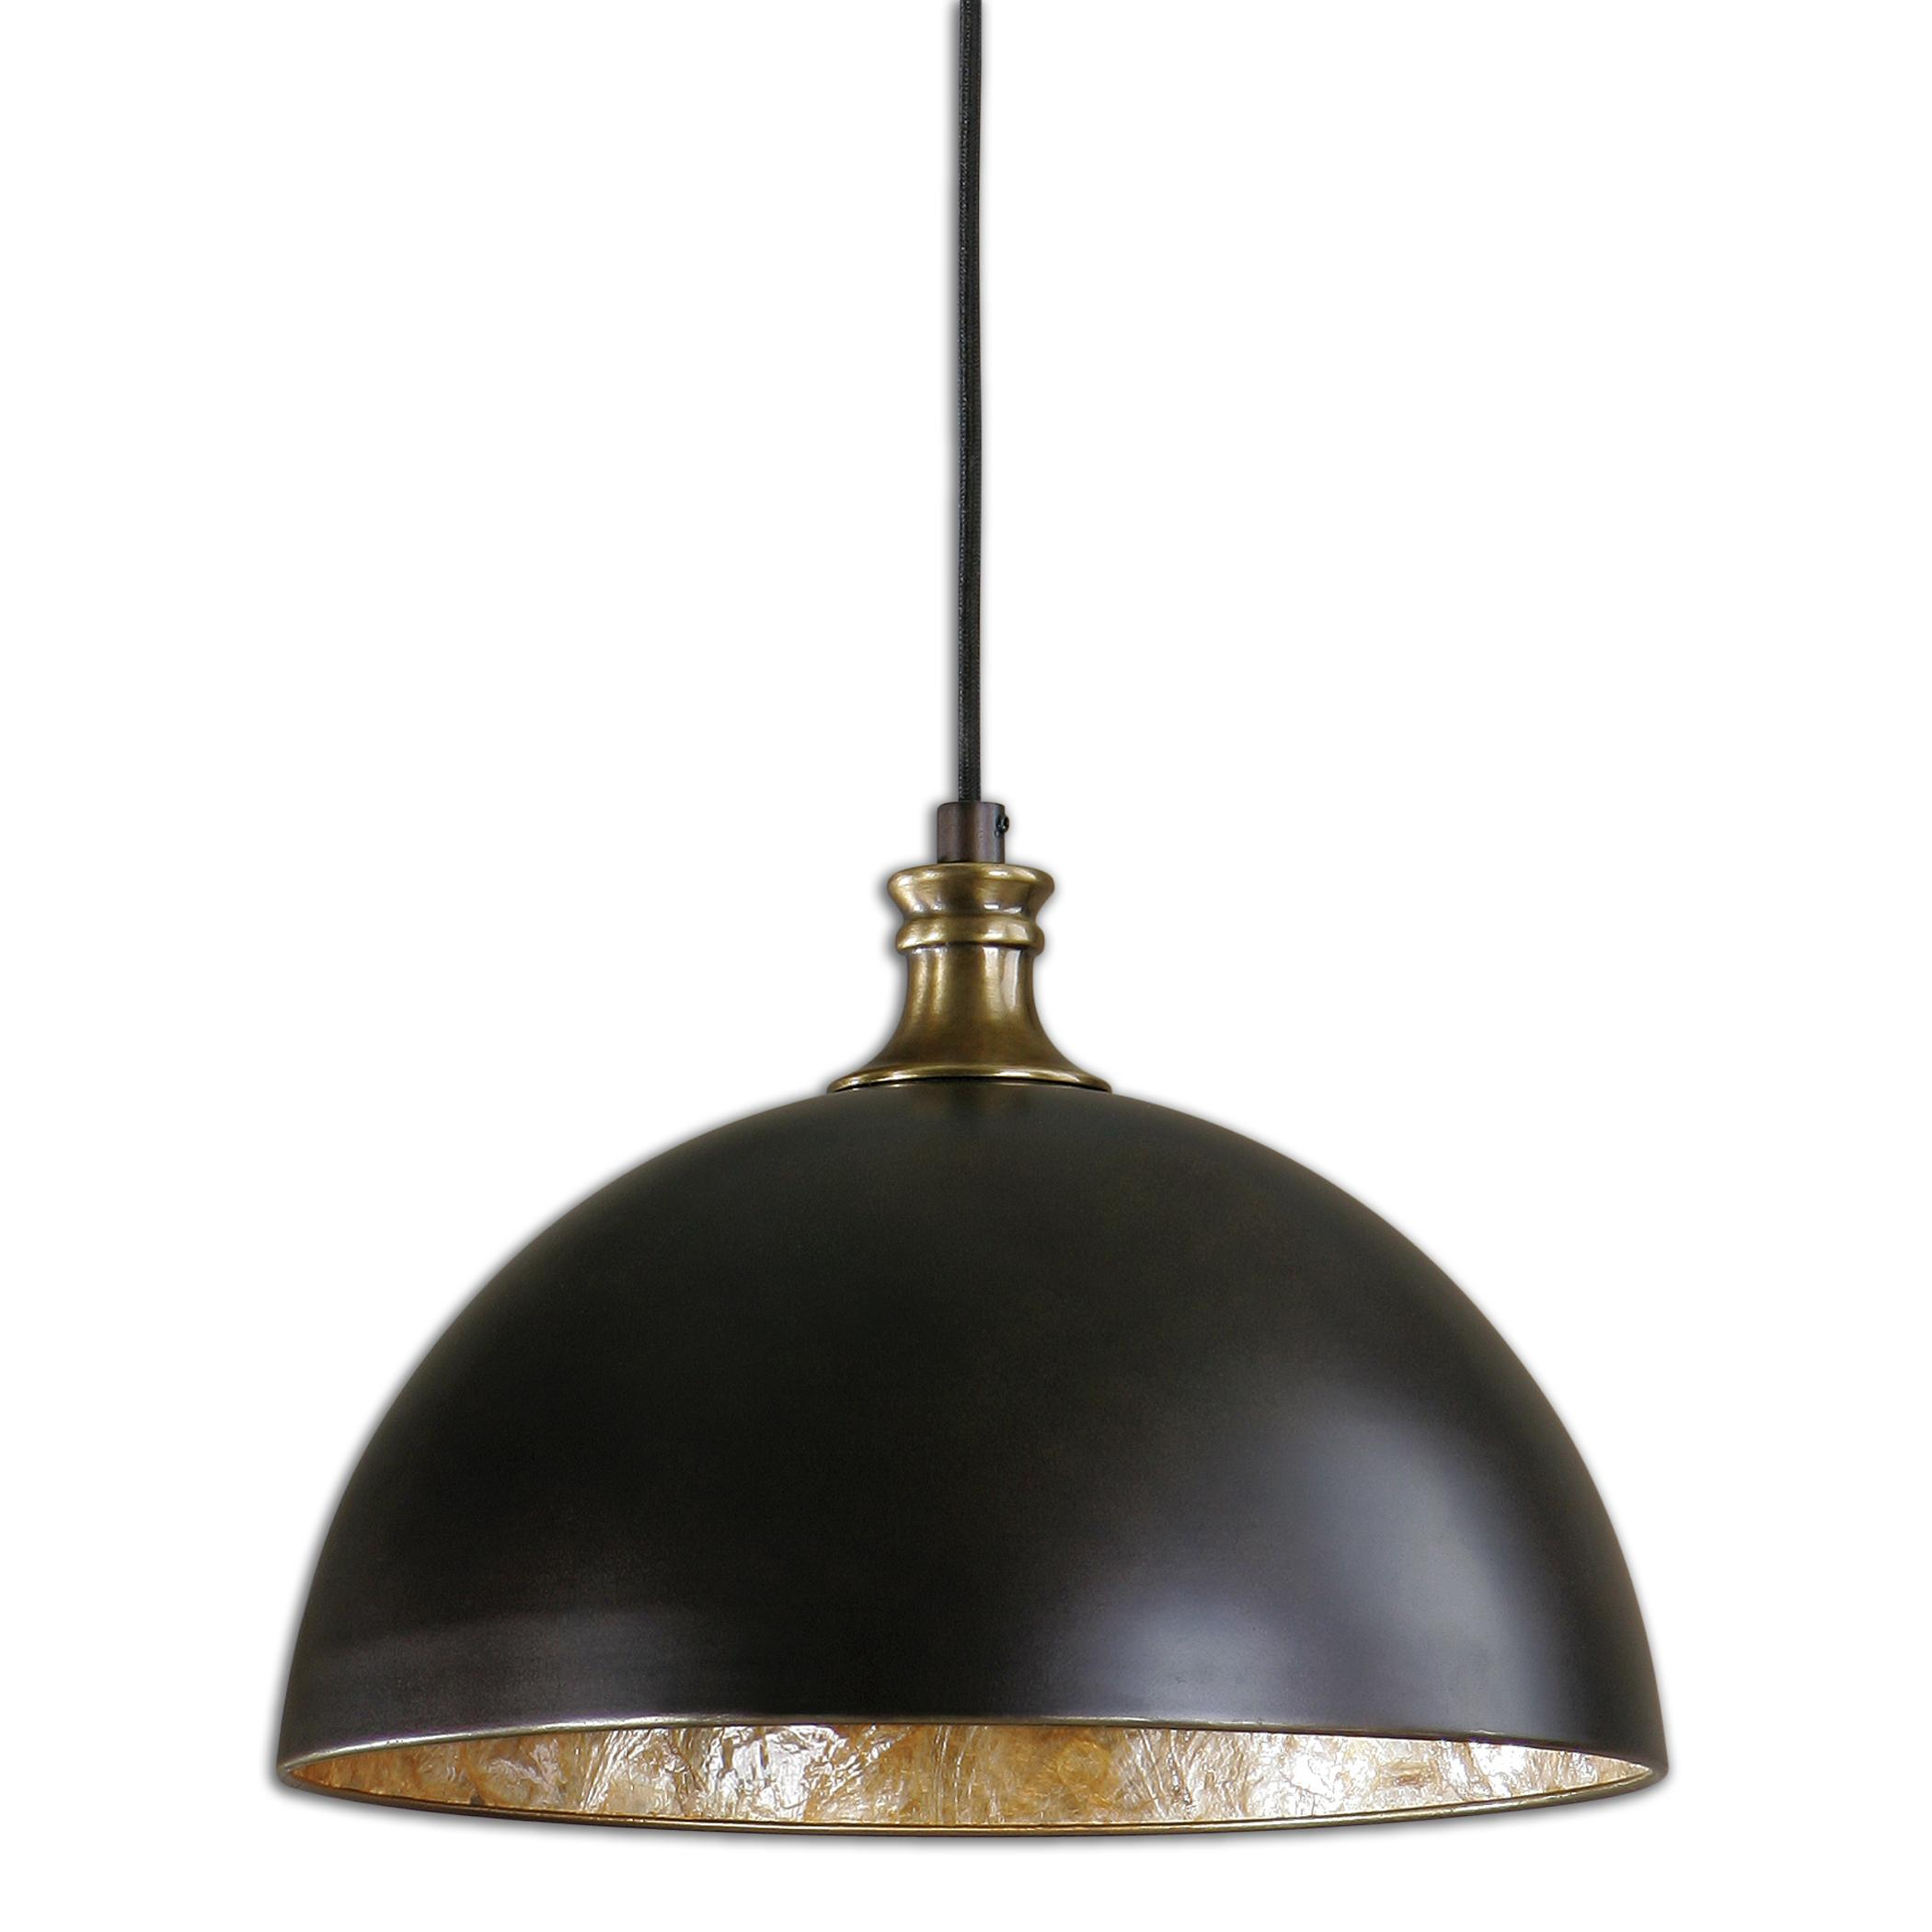 Uttermost Lighting Fixtures Uttermost Placuna 1 Light Bronze Pendant - Item Number: 22028